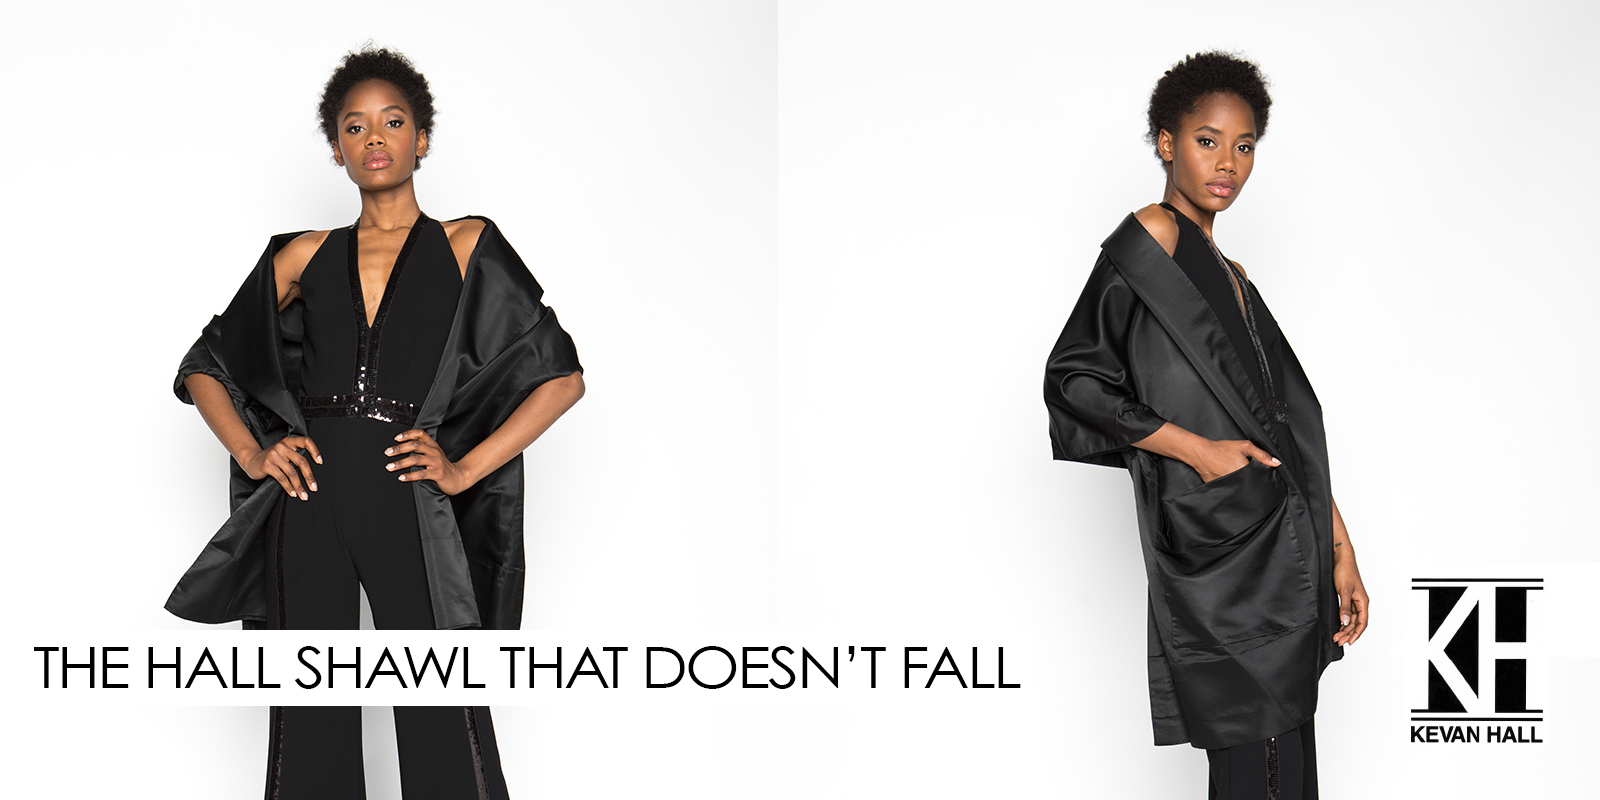 The Hall Shawl That Doesn't Fall